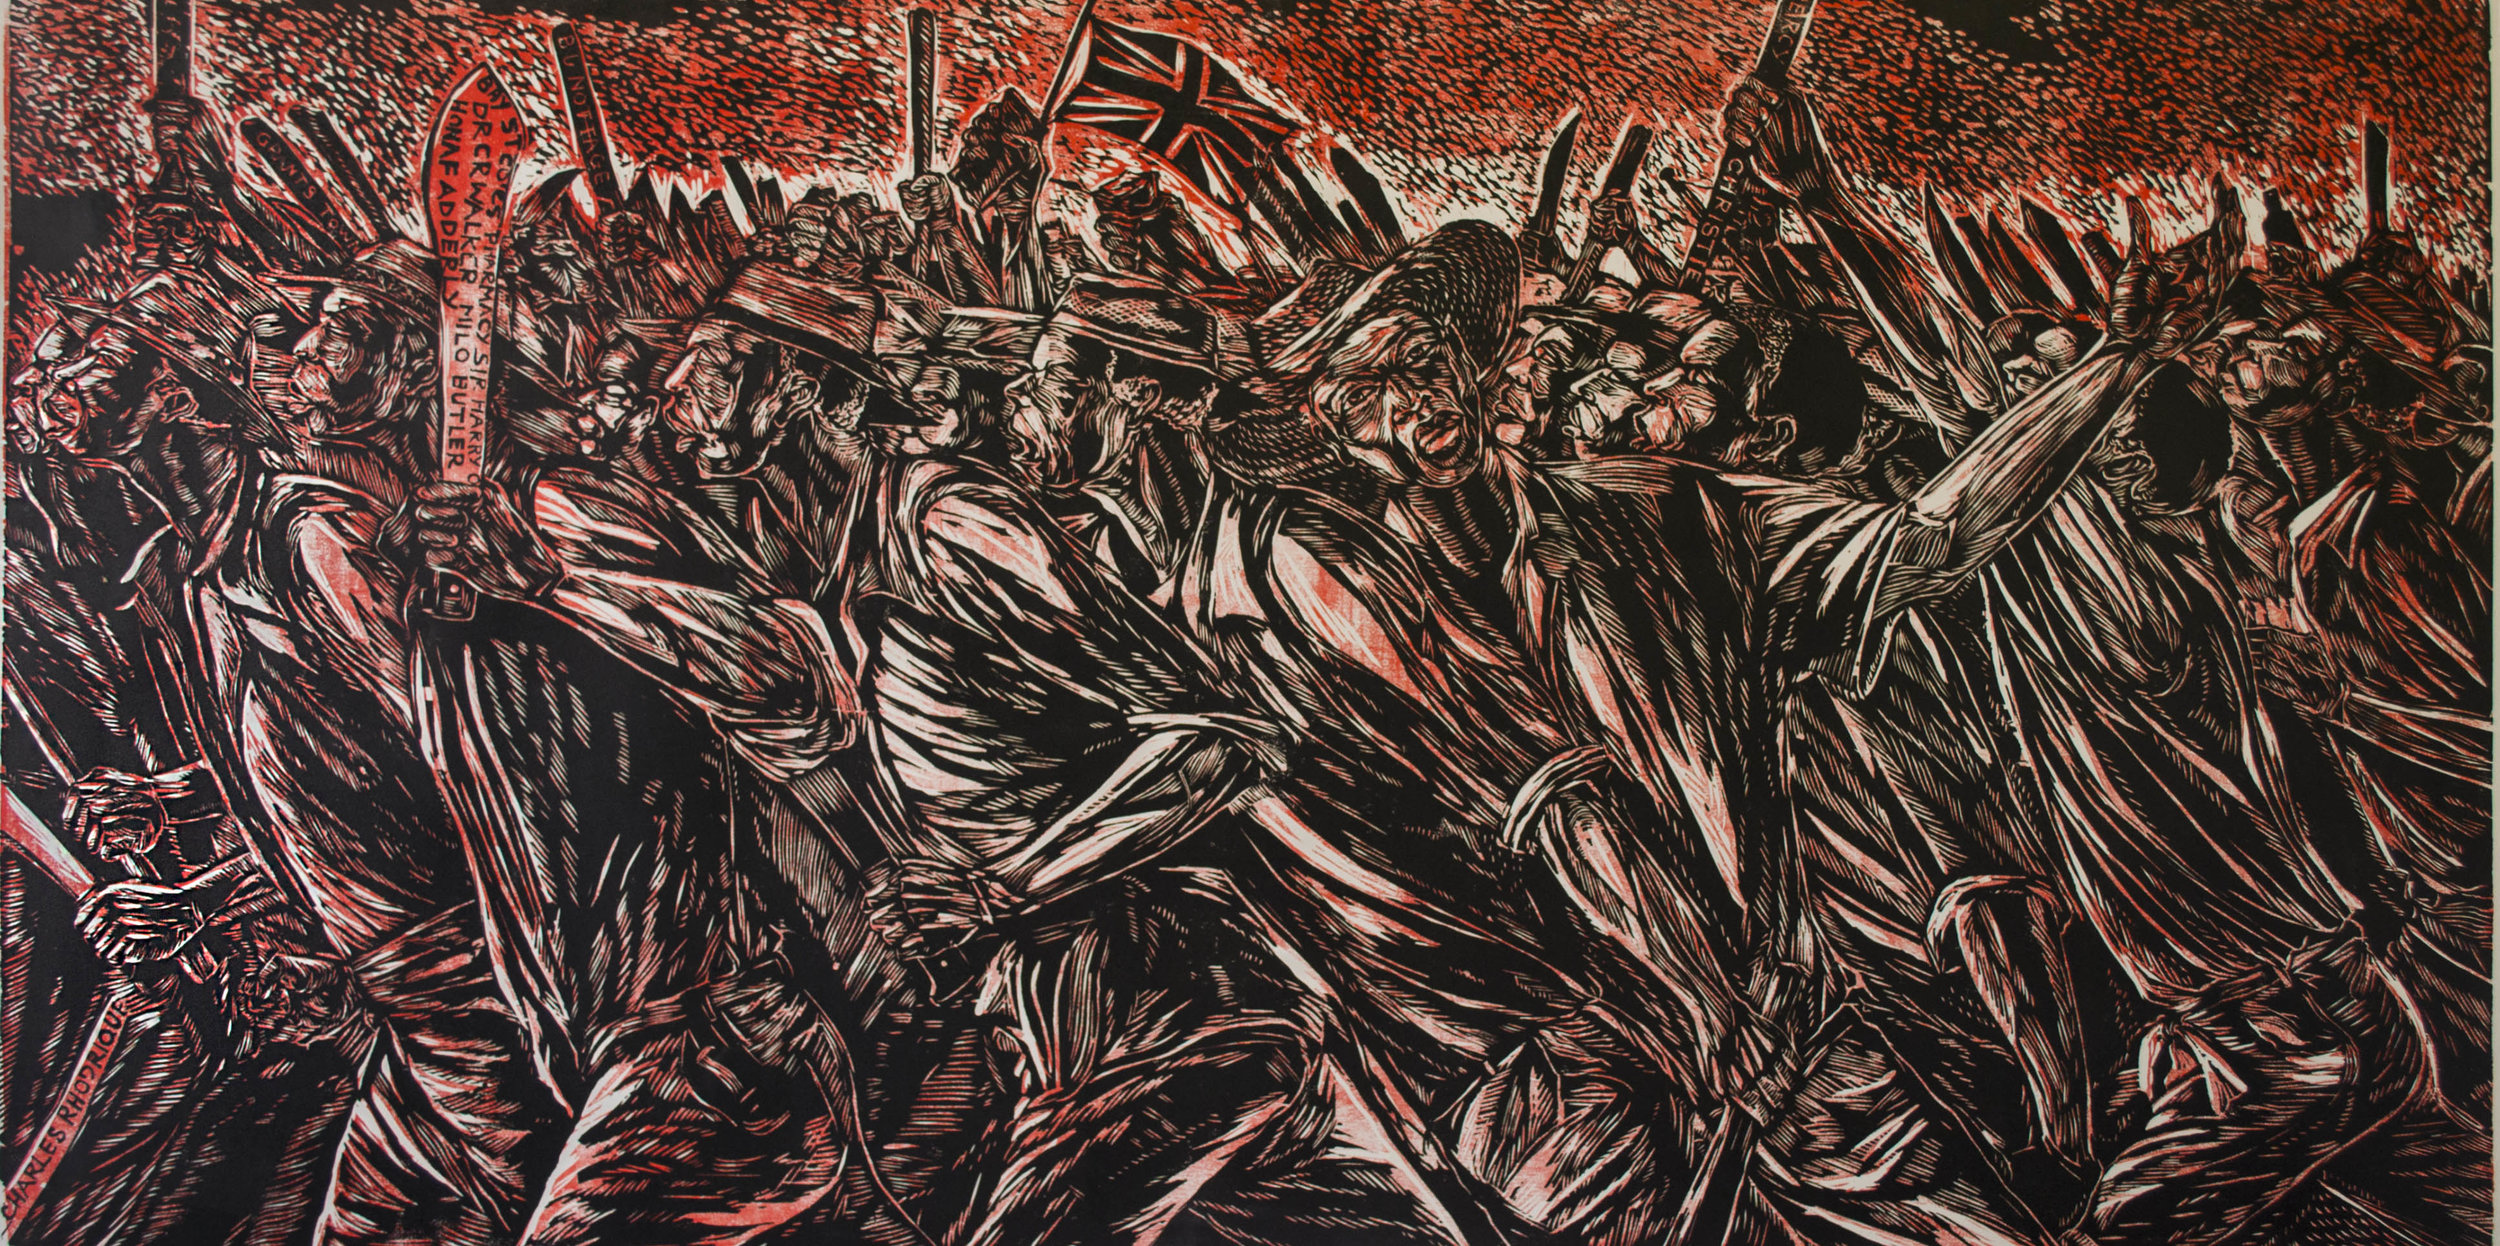 """""""Burma Road"""" (c 2008), Maxwell Taylor, woodcut print on paper, 36 x 72½. Part of the D'Aguilar Art Foundation Collection."""